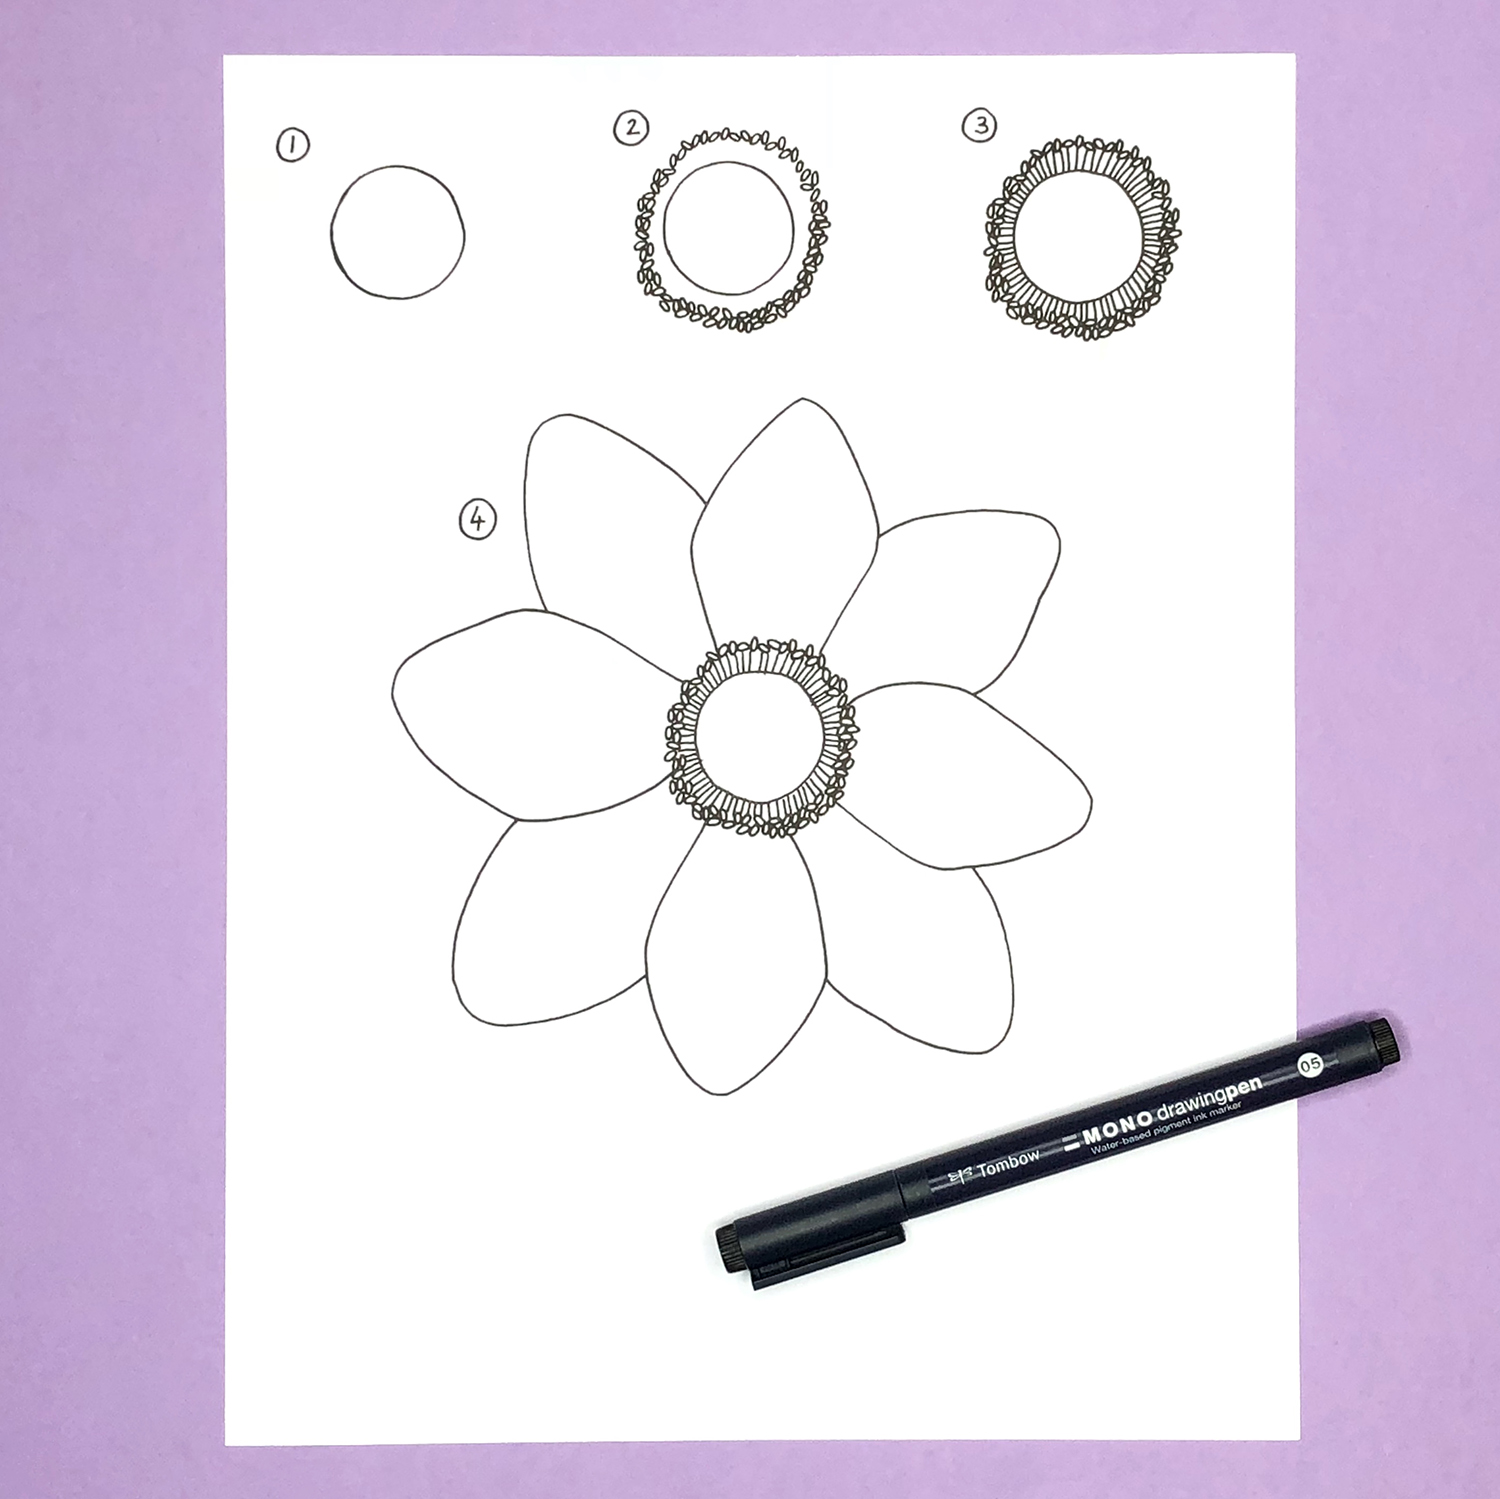 How to Draw an Anemone Flower by Jessica Mack from BrownPaperBunny